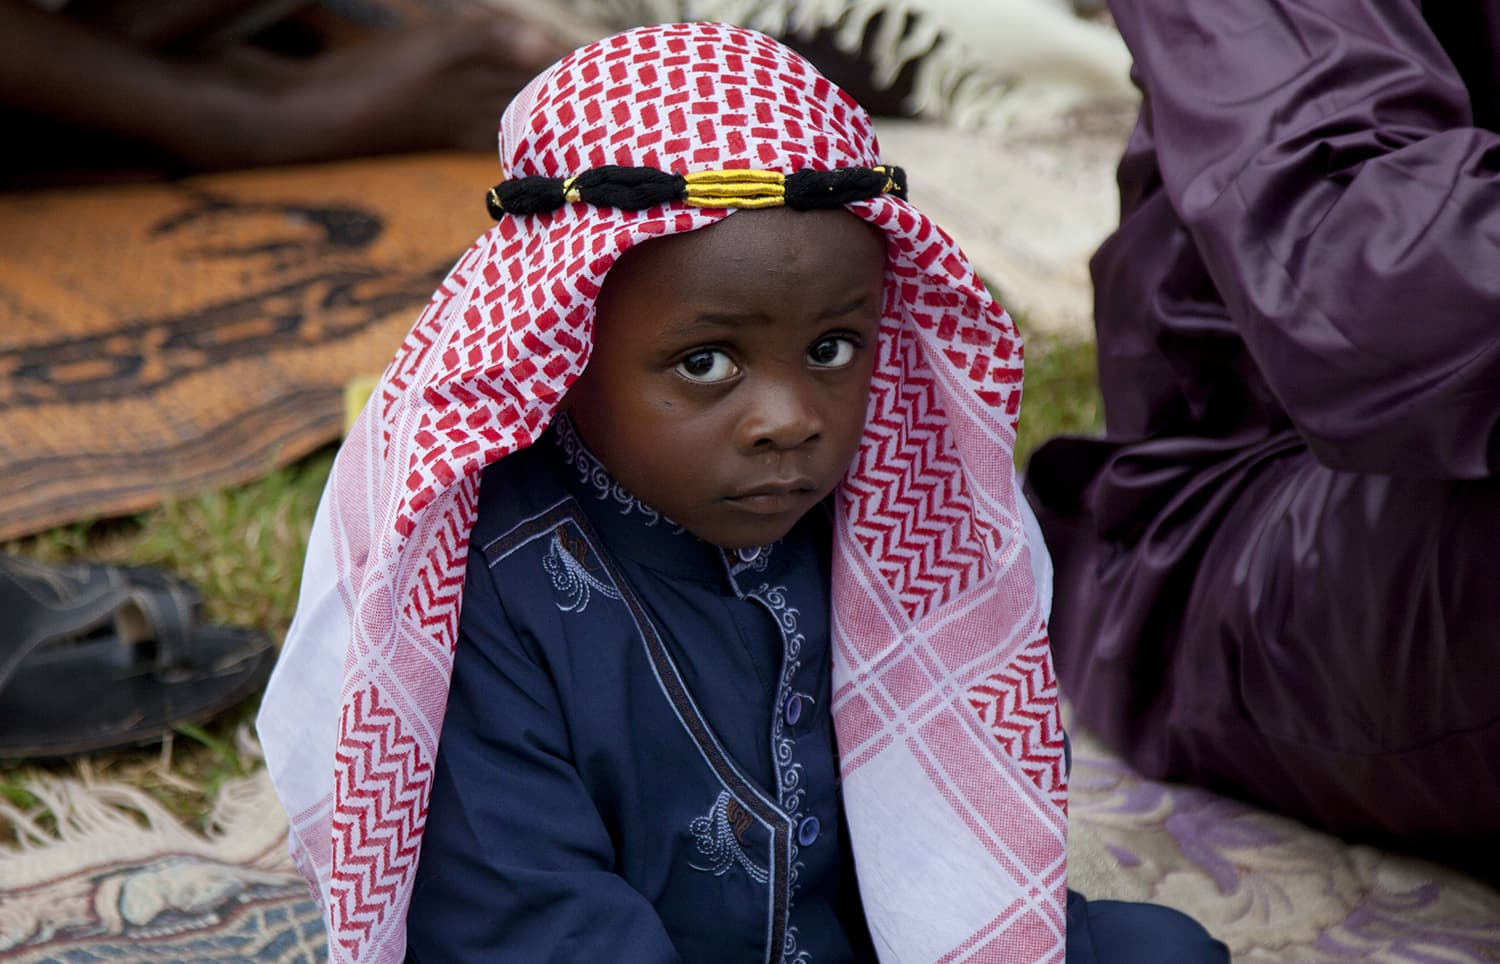 A Kenyan Muslim child listens to the Imam as he delivers sermon during the Eid prayers in Nairobi, Kenya. — AP